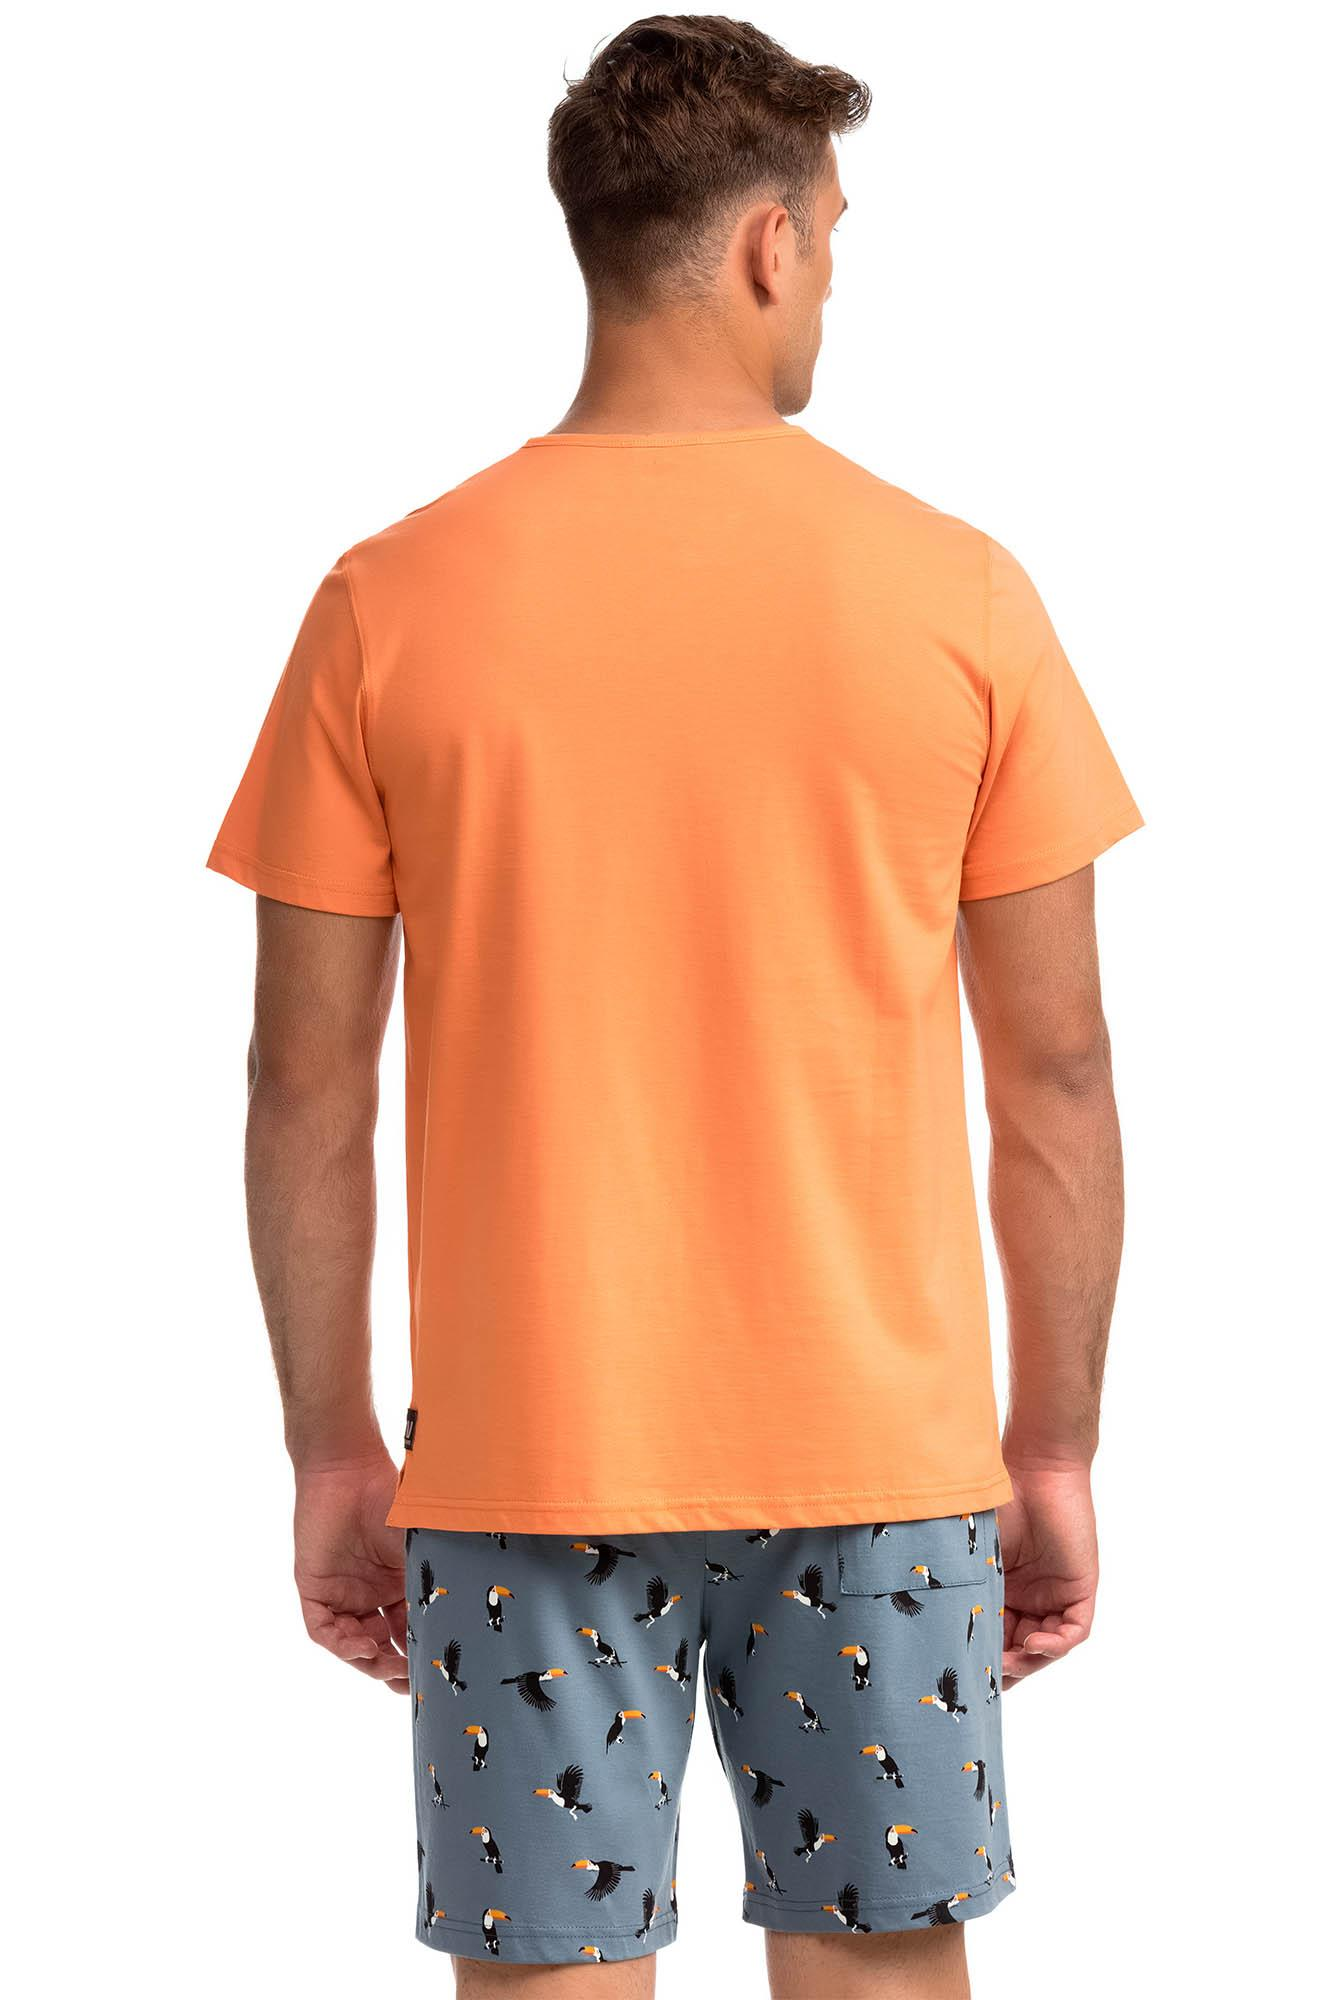 Men's Short-Sleeved Pyjamas Twocan